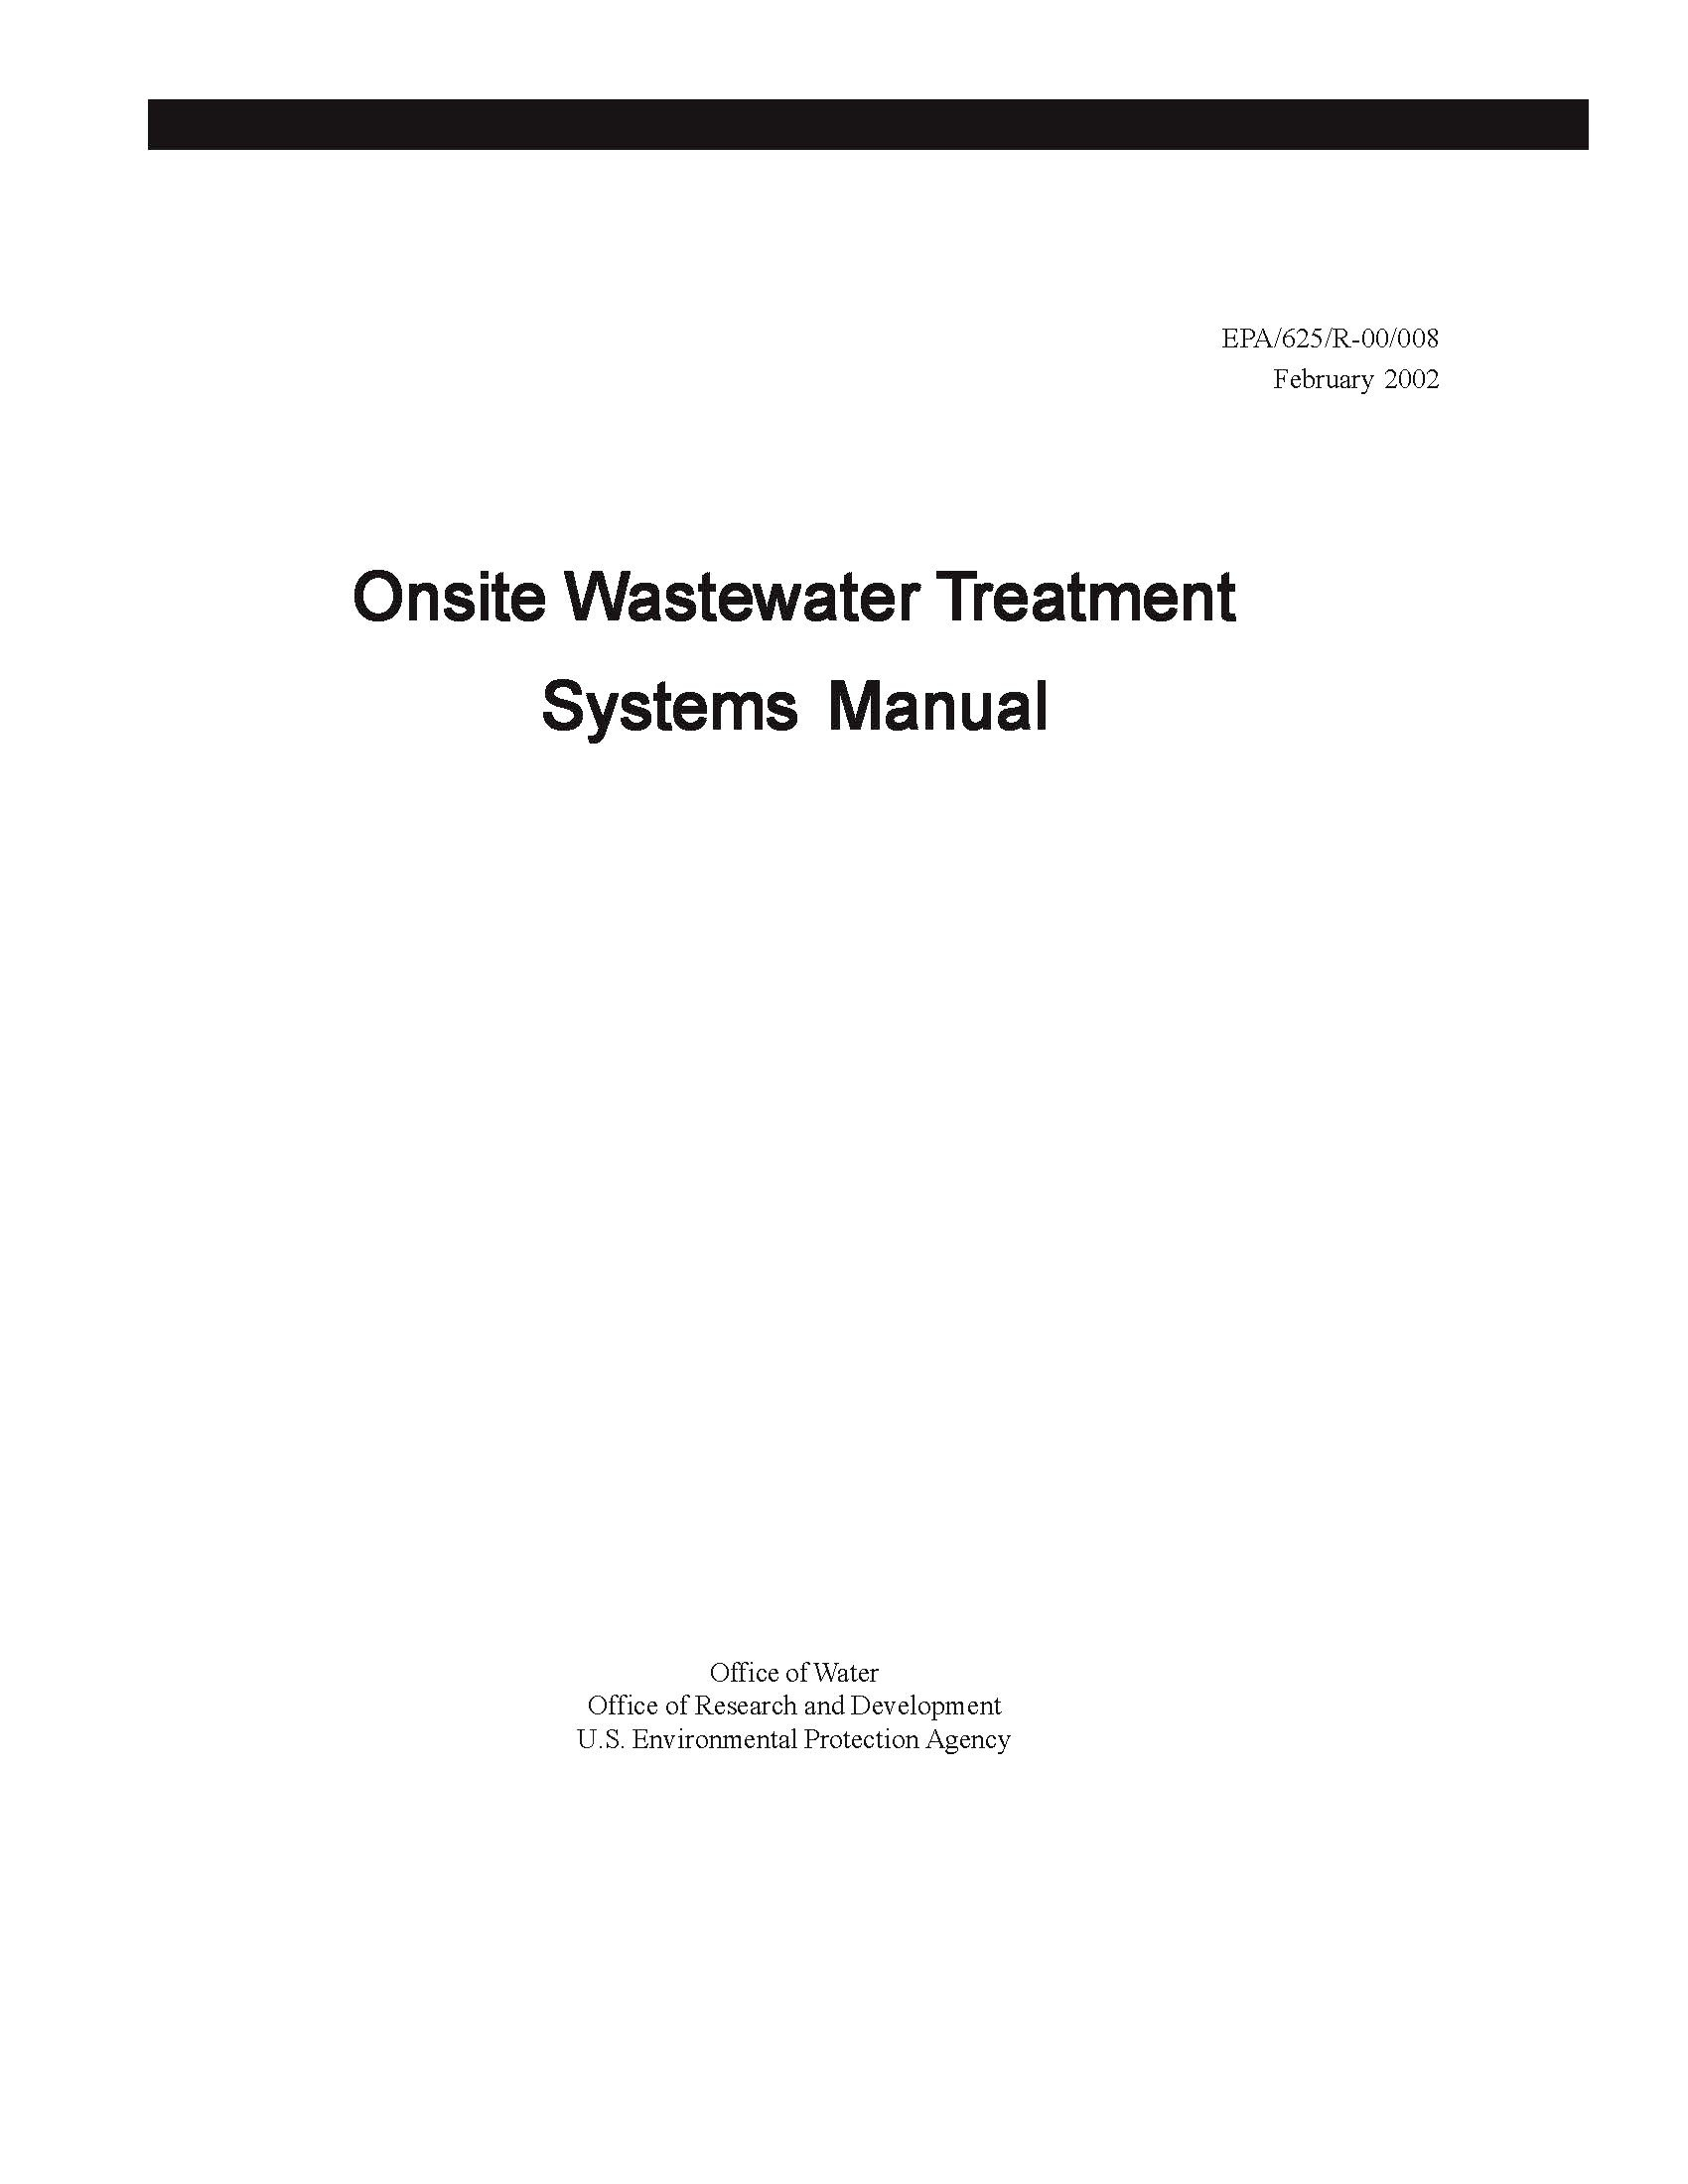 Download EPA Onsite Wastewater Treatment Systems Manual 2002 EPA/625/R-00/008 [Loose Leaf Publication] ebook